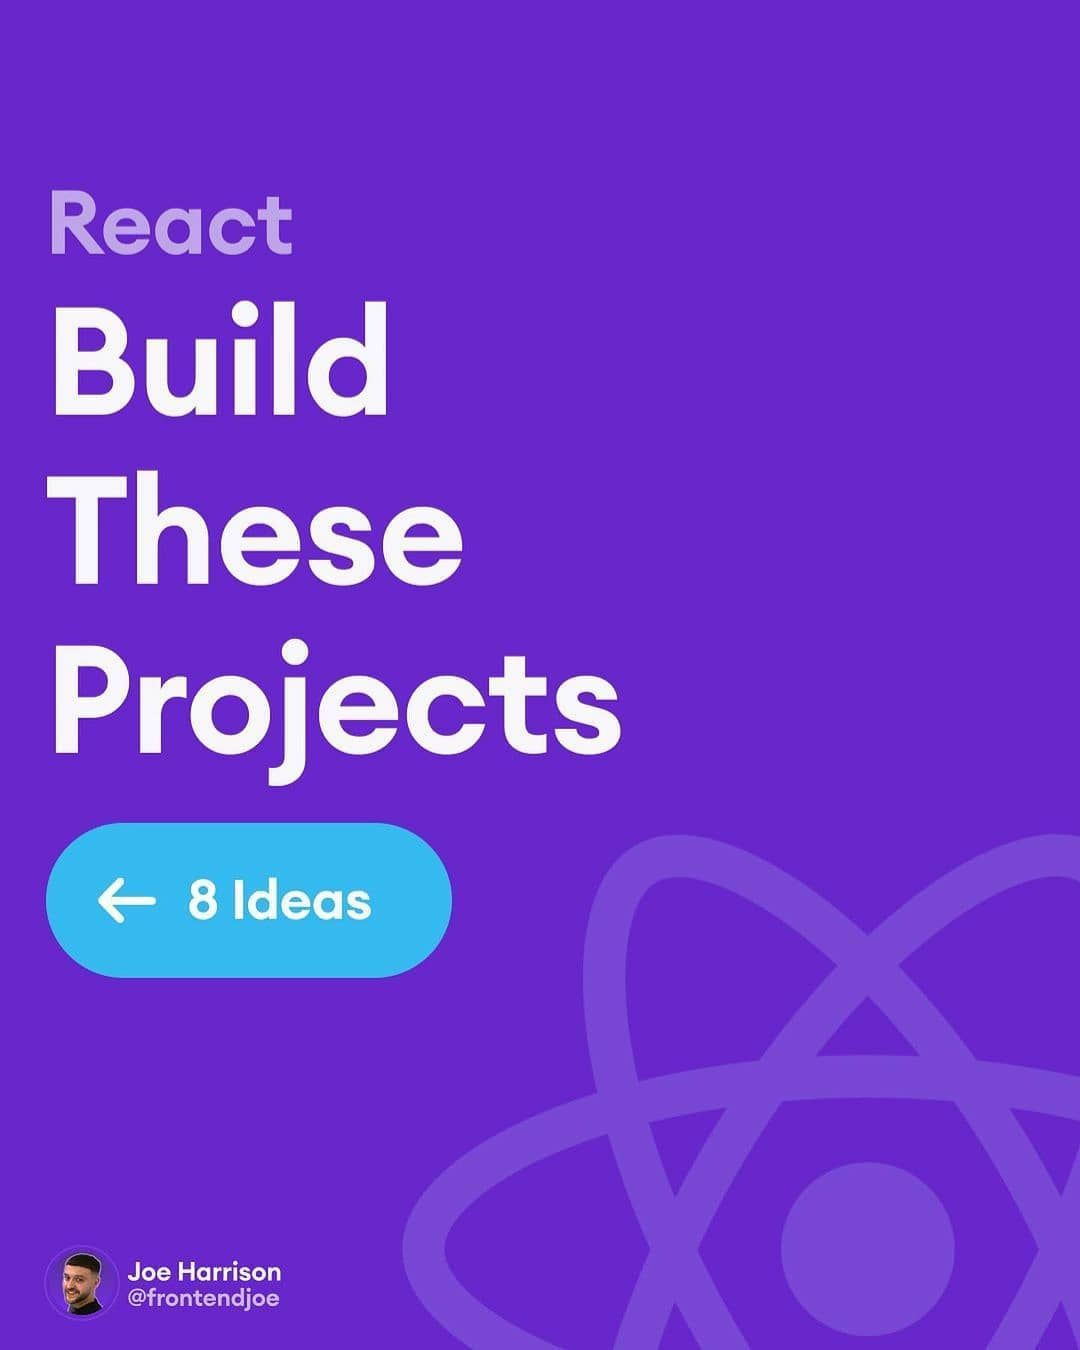 Build these projects